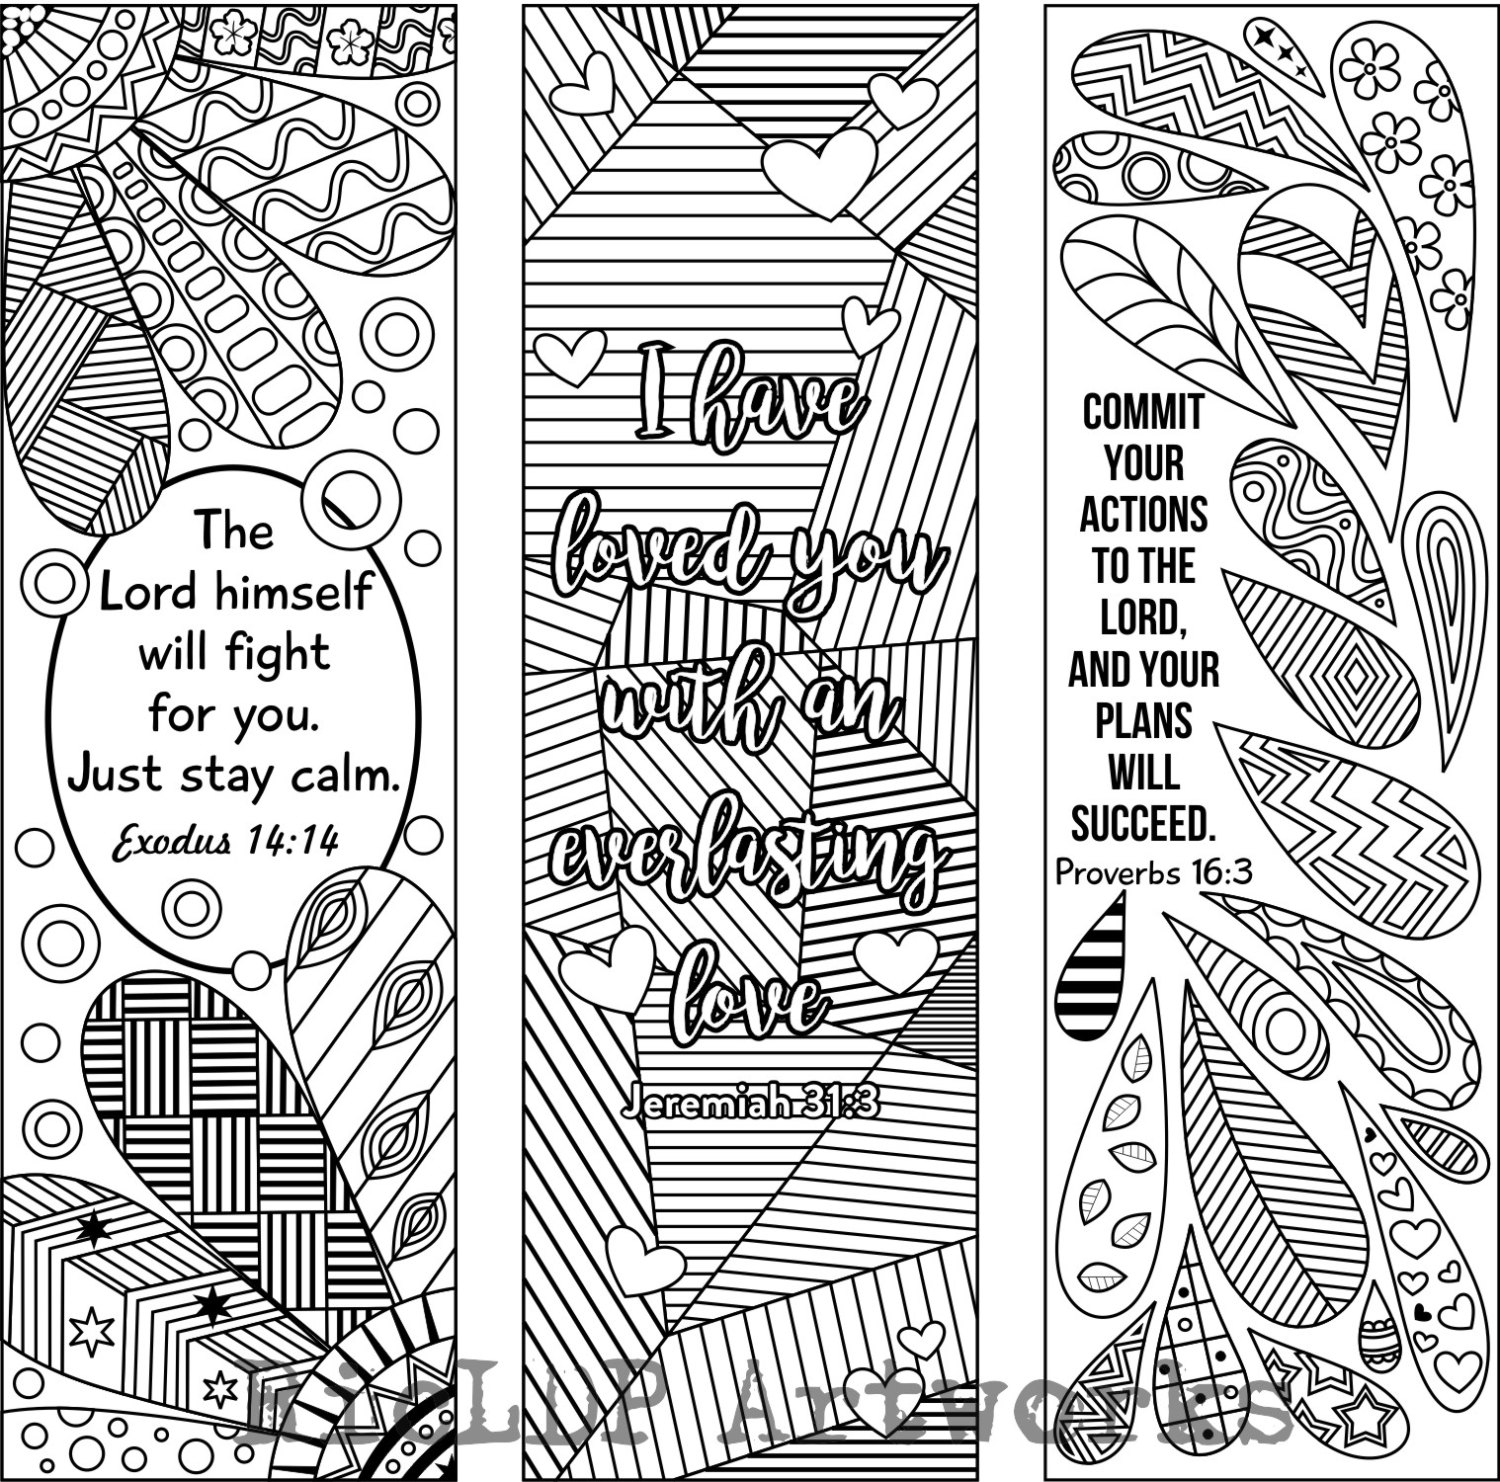 Coloring bible verse bookmark